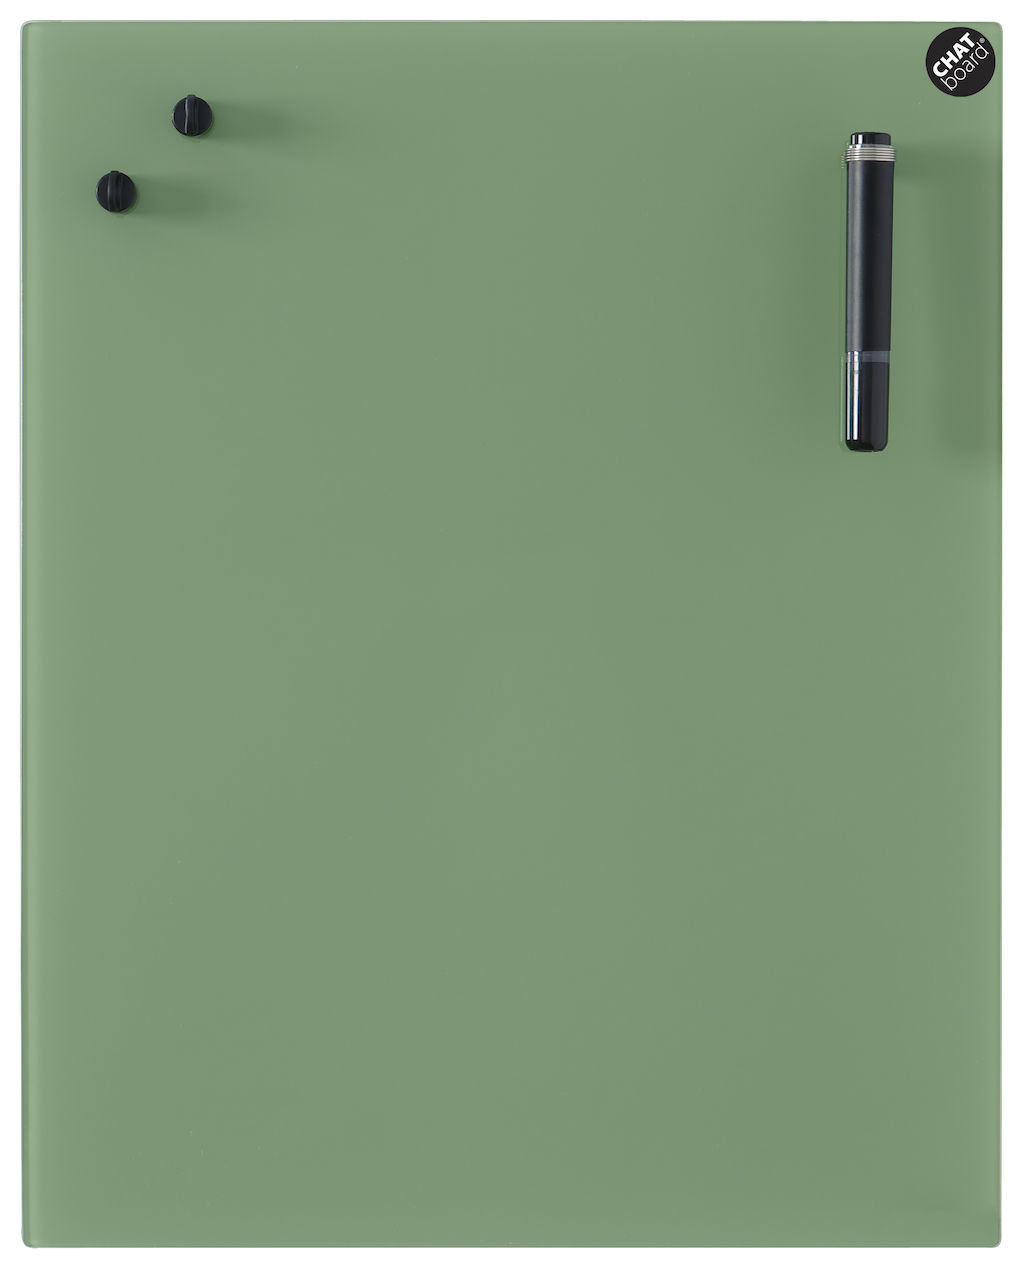 CHAT BOARD® – Leaf Green